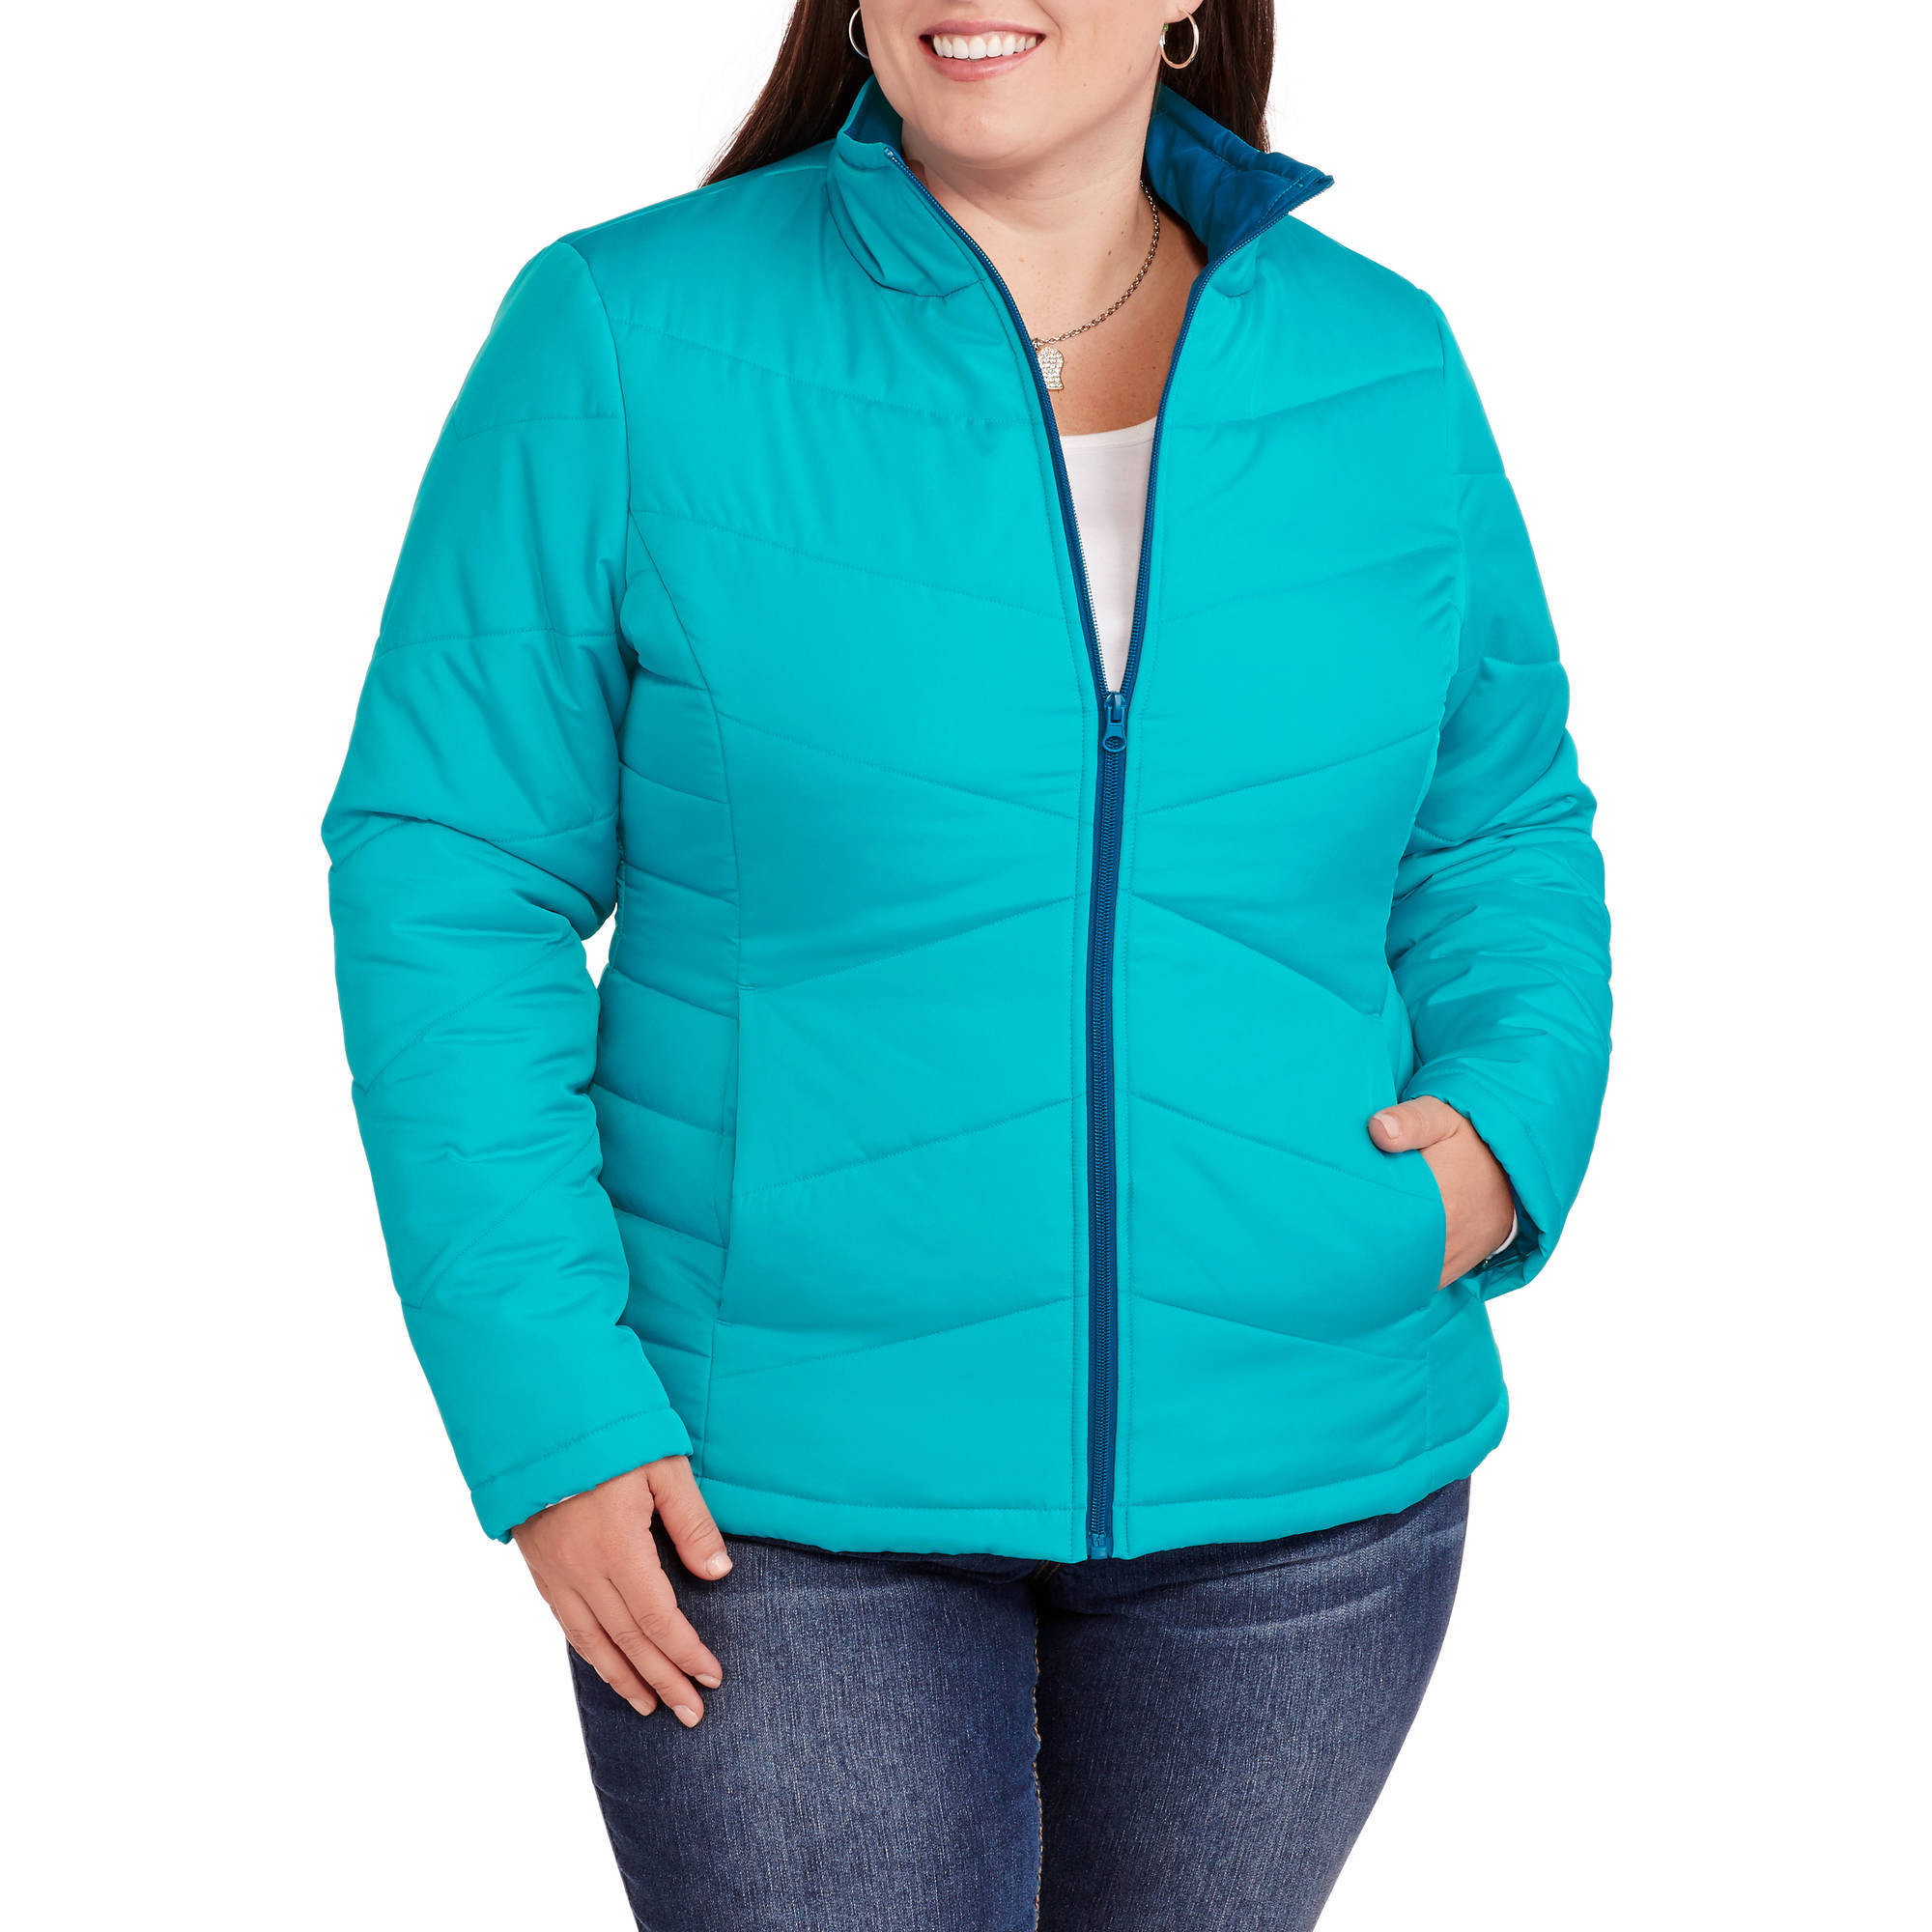 Faded Glory Women's Plus-Size Lightweight Bubble Jacket